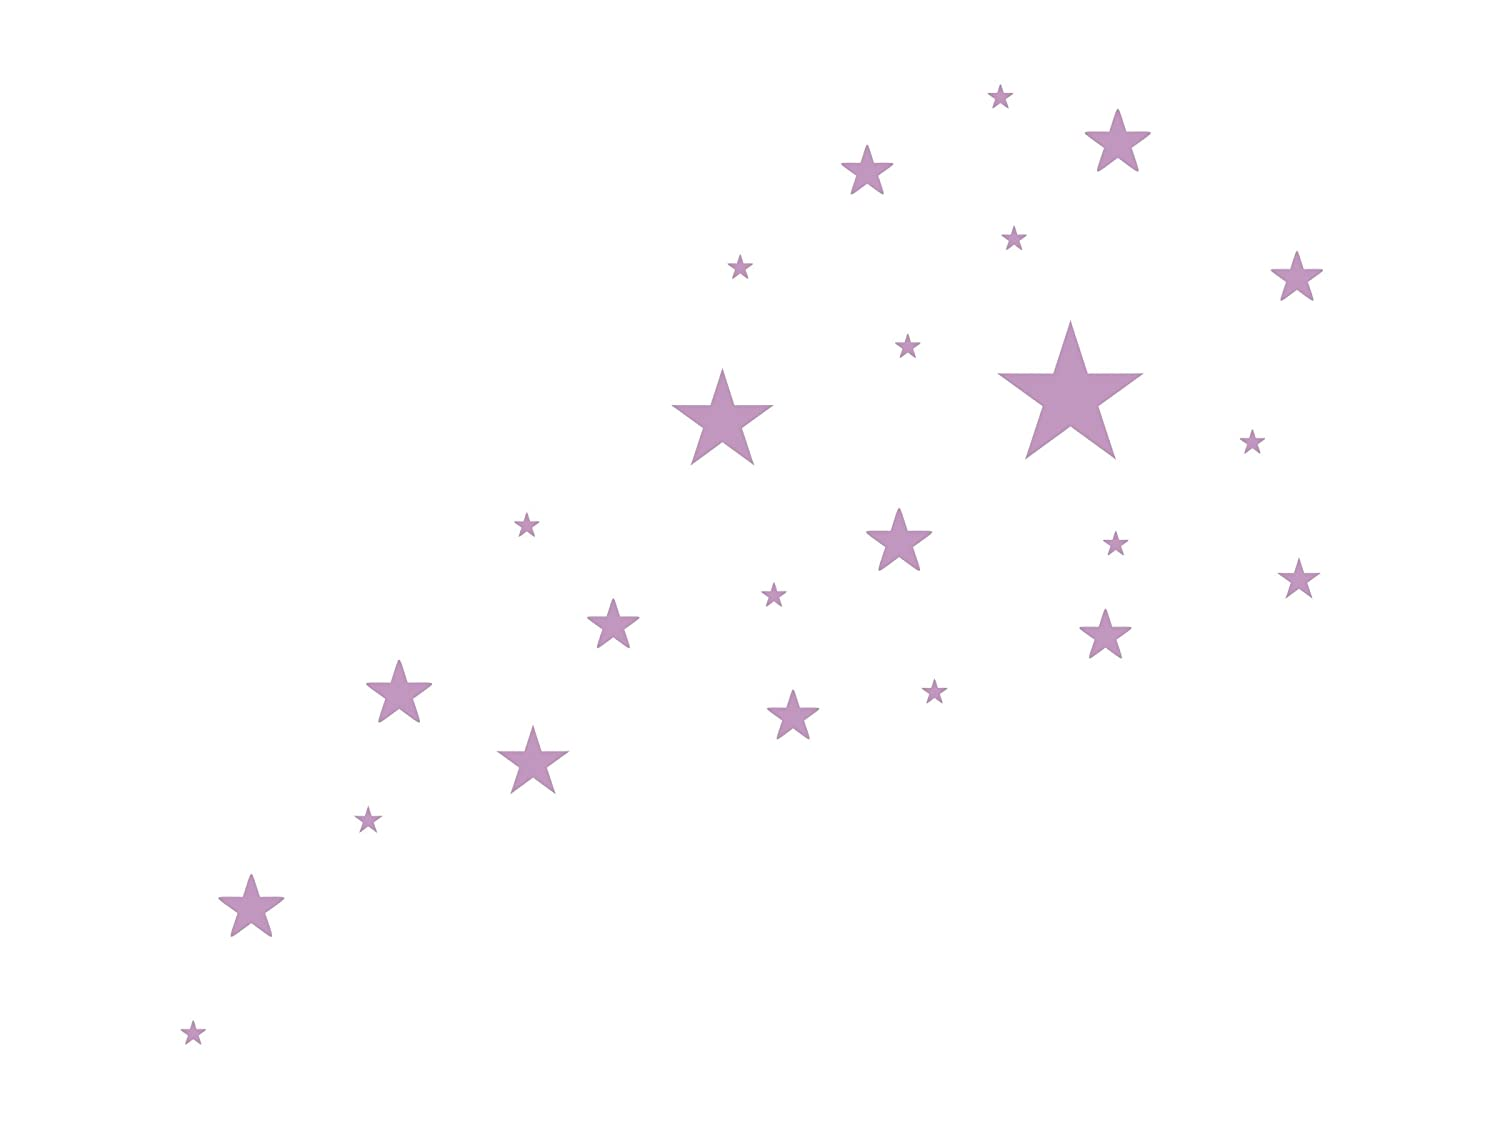 Wandtattooshop (St4S2) Wall Stickers Star Shaped Pack of 24 / 2 - 10 cm wandtattooshop.eu